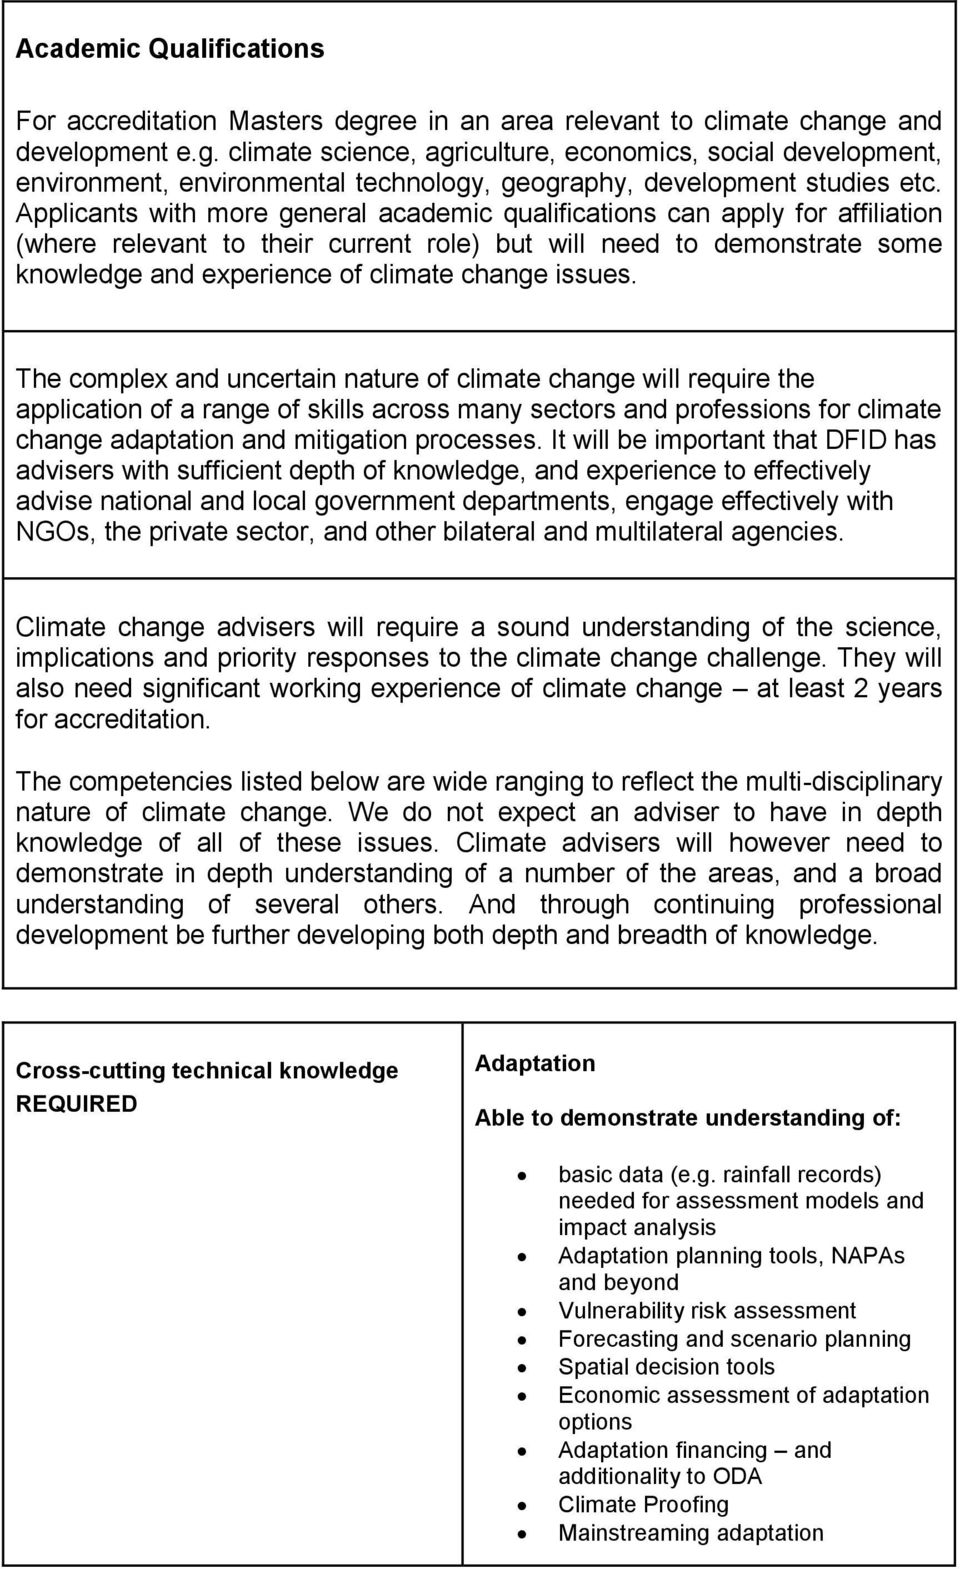 issues. The complex and uncertain nature of climate change will require the application of a range of skills across many sectors and professions for climate change adaptation and mitigation processes.